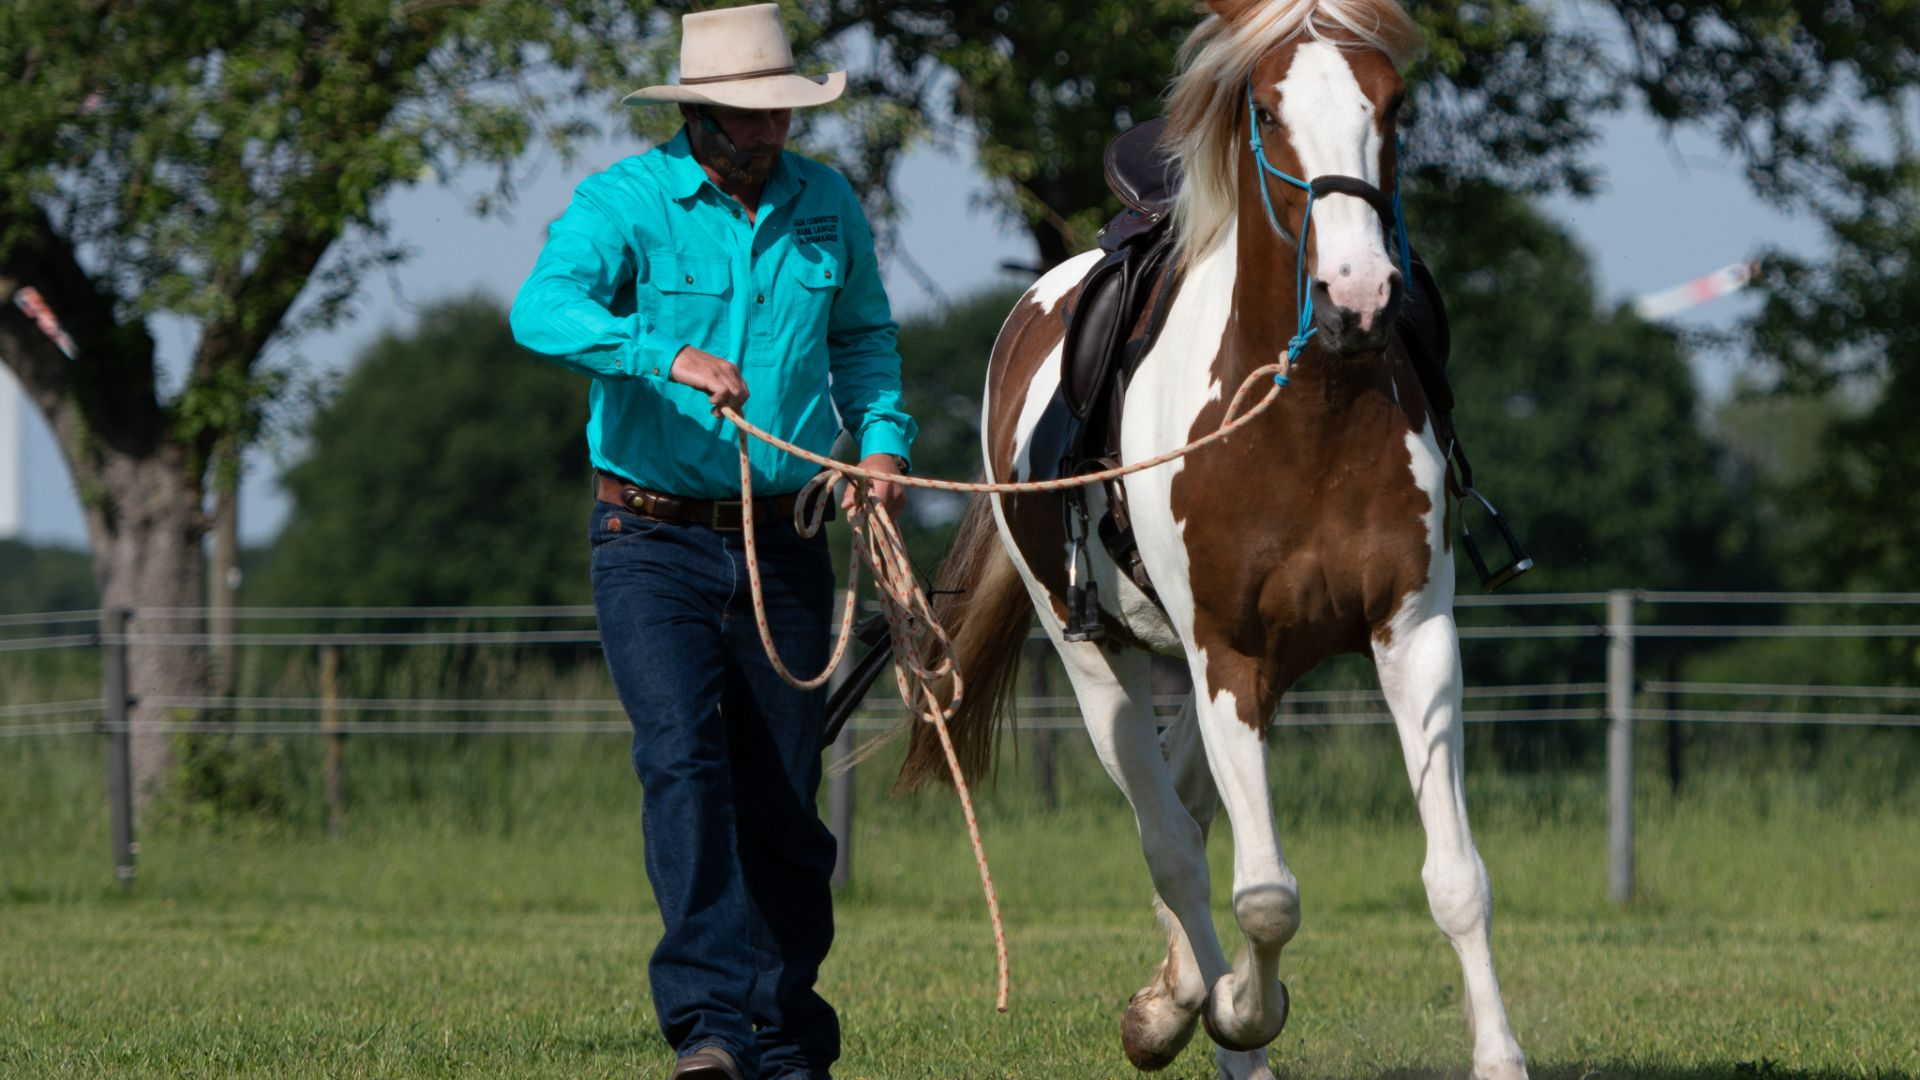 Equine Centre in Wagga Wagga to host renowned horse trainer